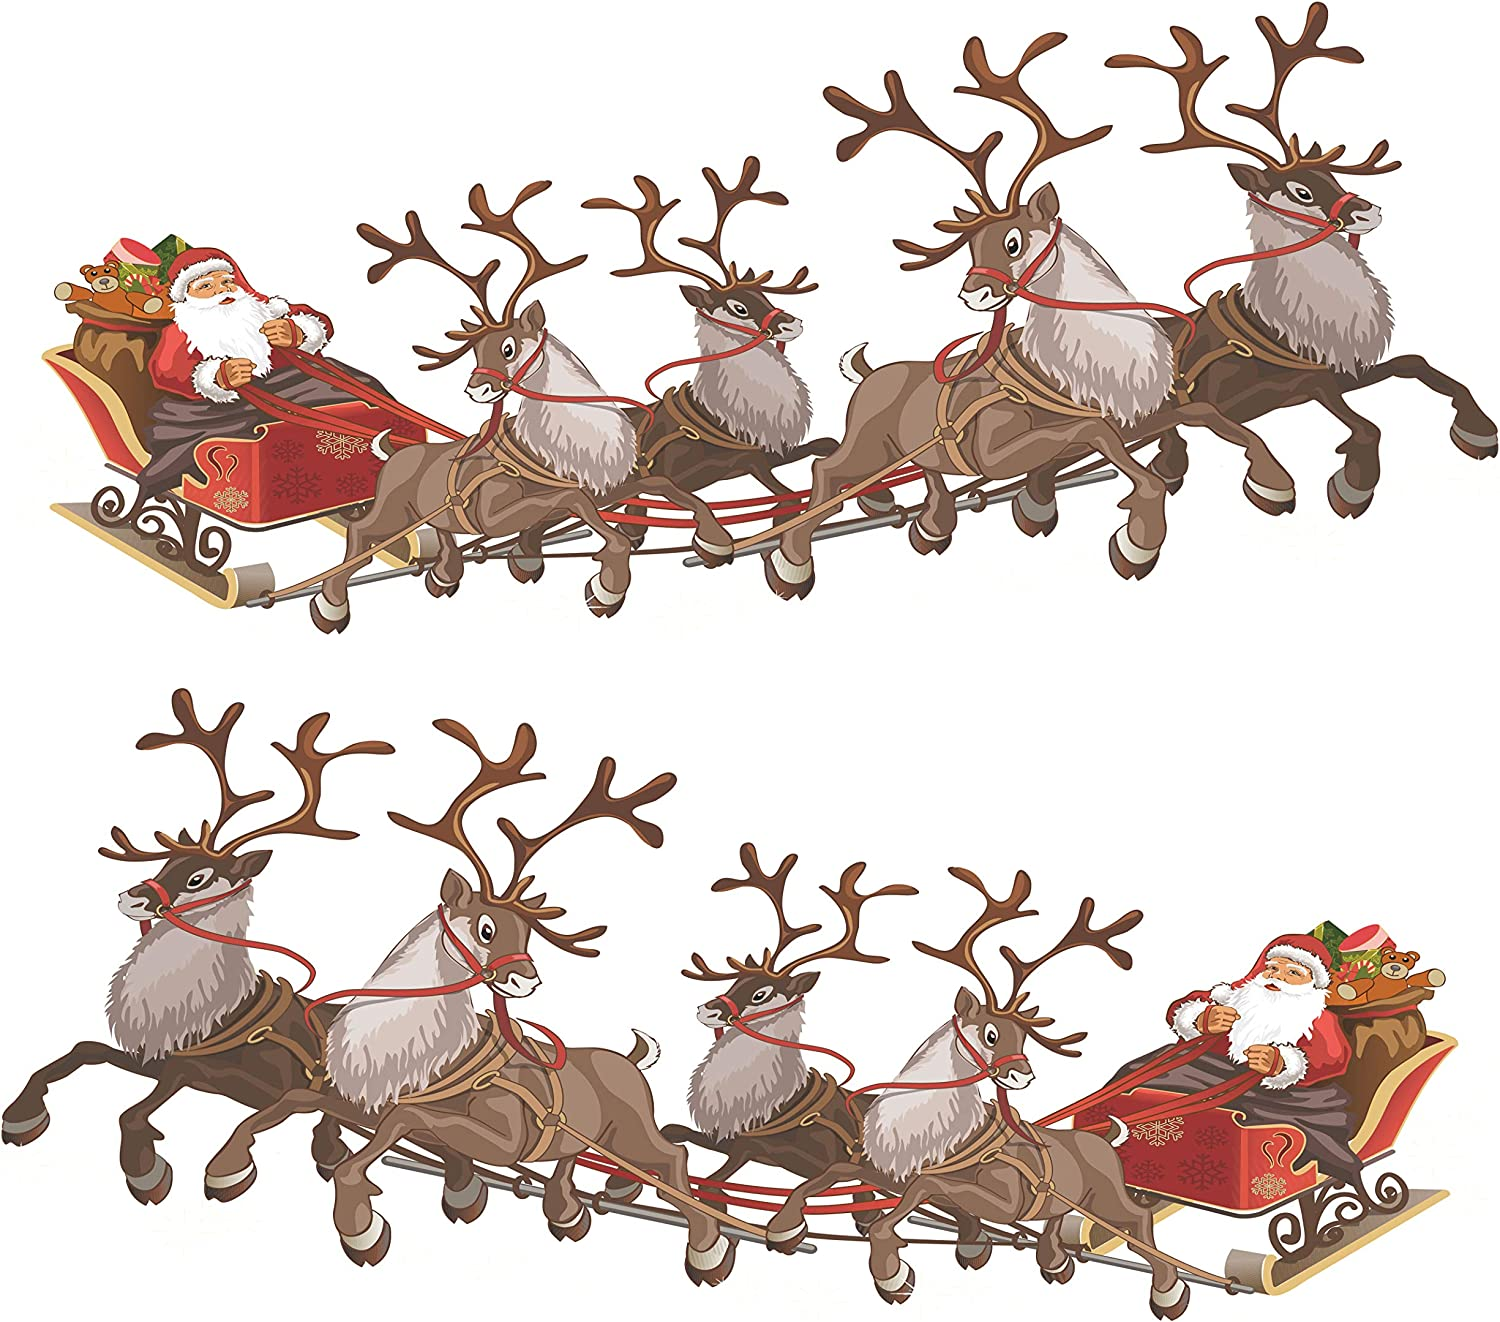 Set Of 2 Small Santa Sleigh And Reindeer Full Colour Window Cling Sticker Christmas Window Decorations By Stickers4 Small Amazon Co Uk Kitchen Home